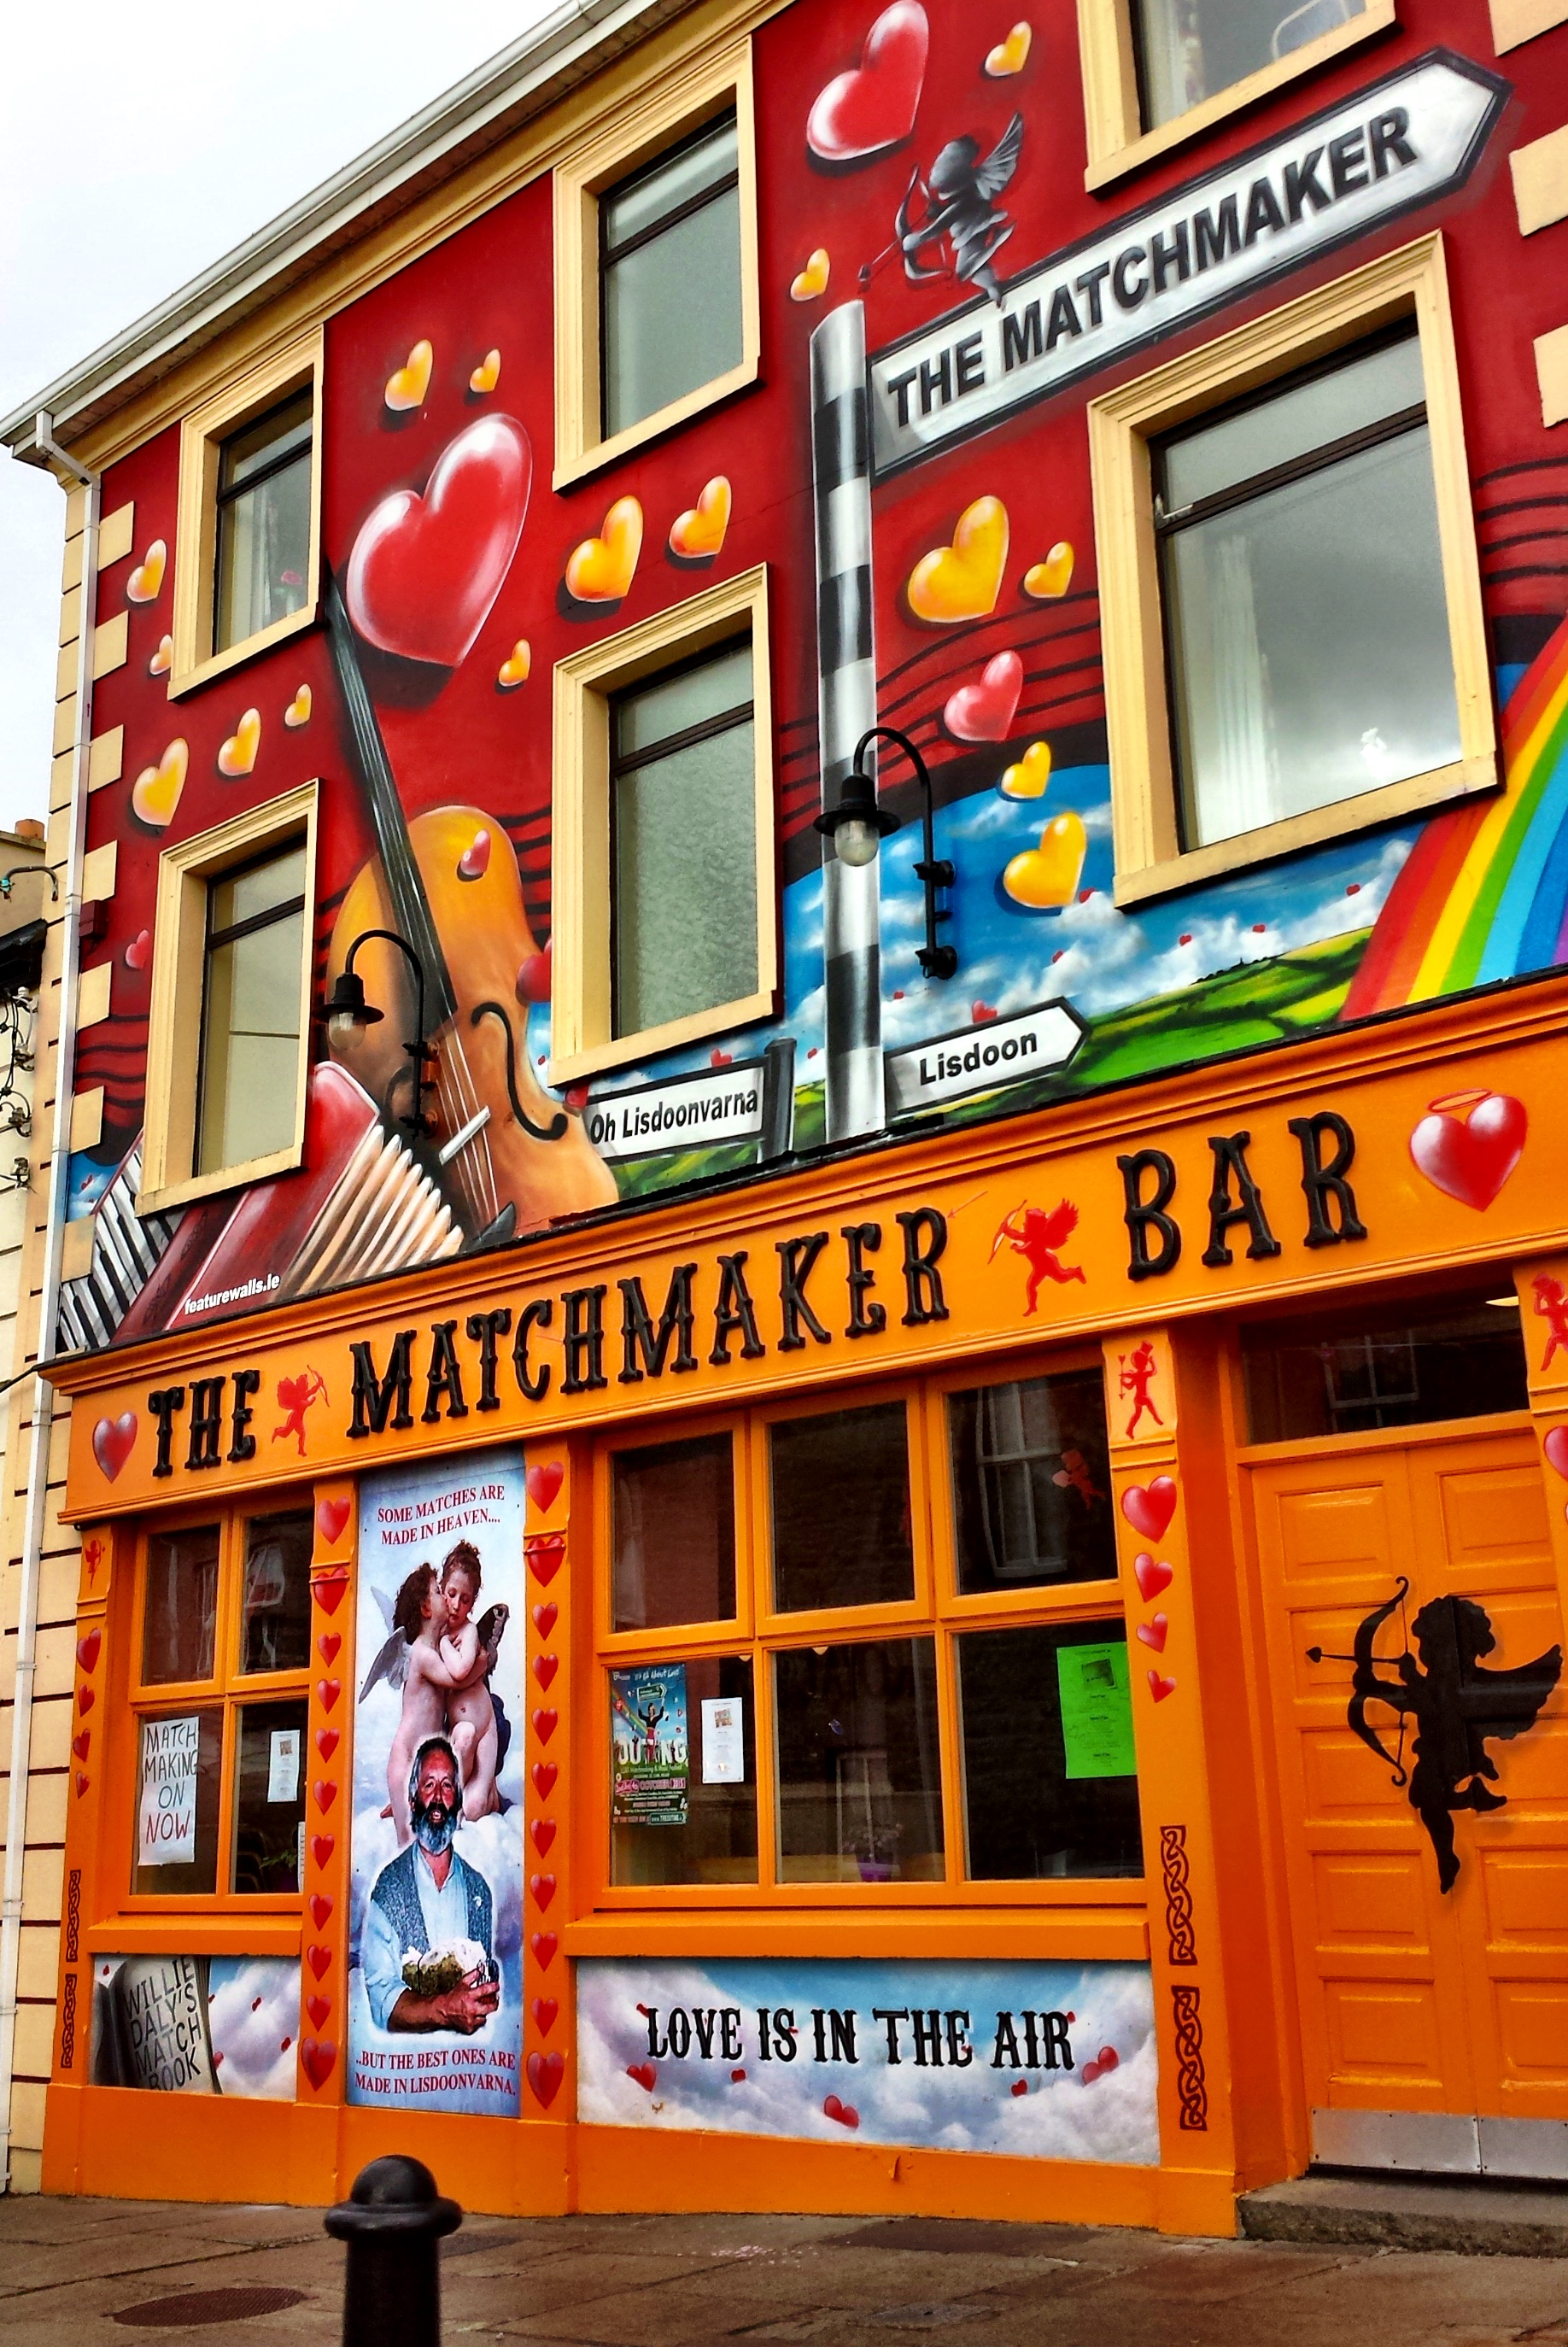 The Matchmaker Bar - Ireland